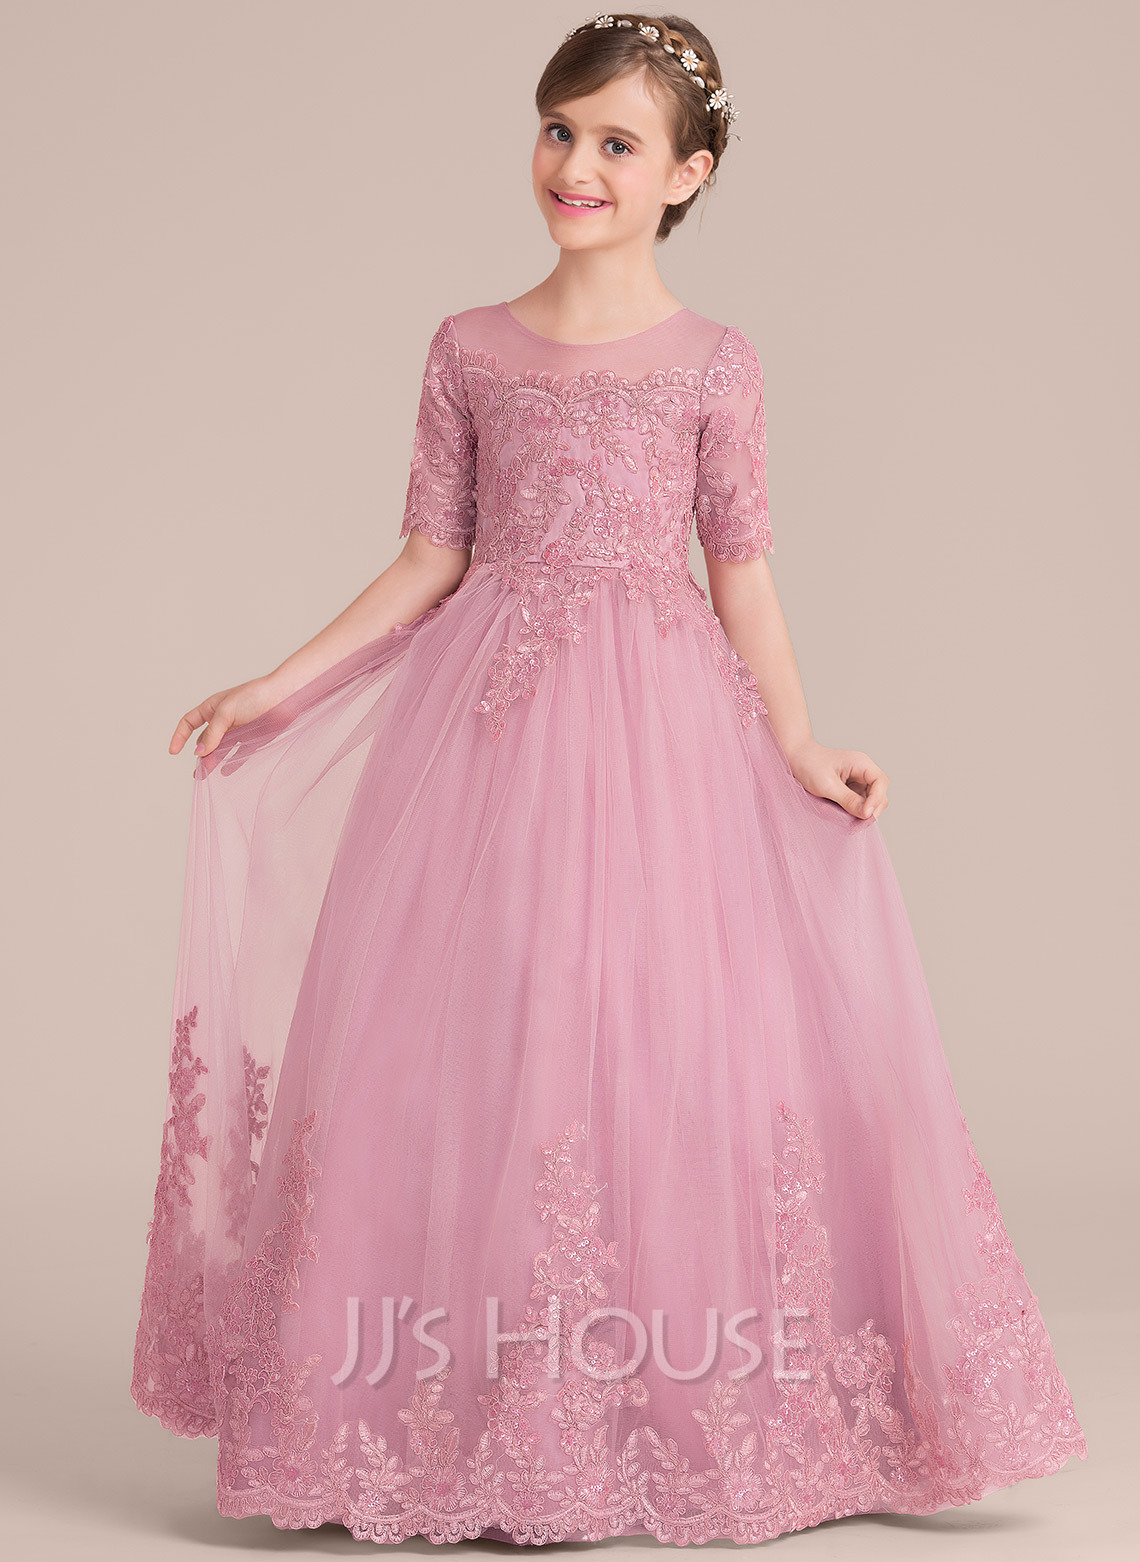 2bb667f8543 Ball Gown Floor-length Flower Girl Dress - Tulle Lace 1 2 Sleeves. Loading  zoom